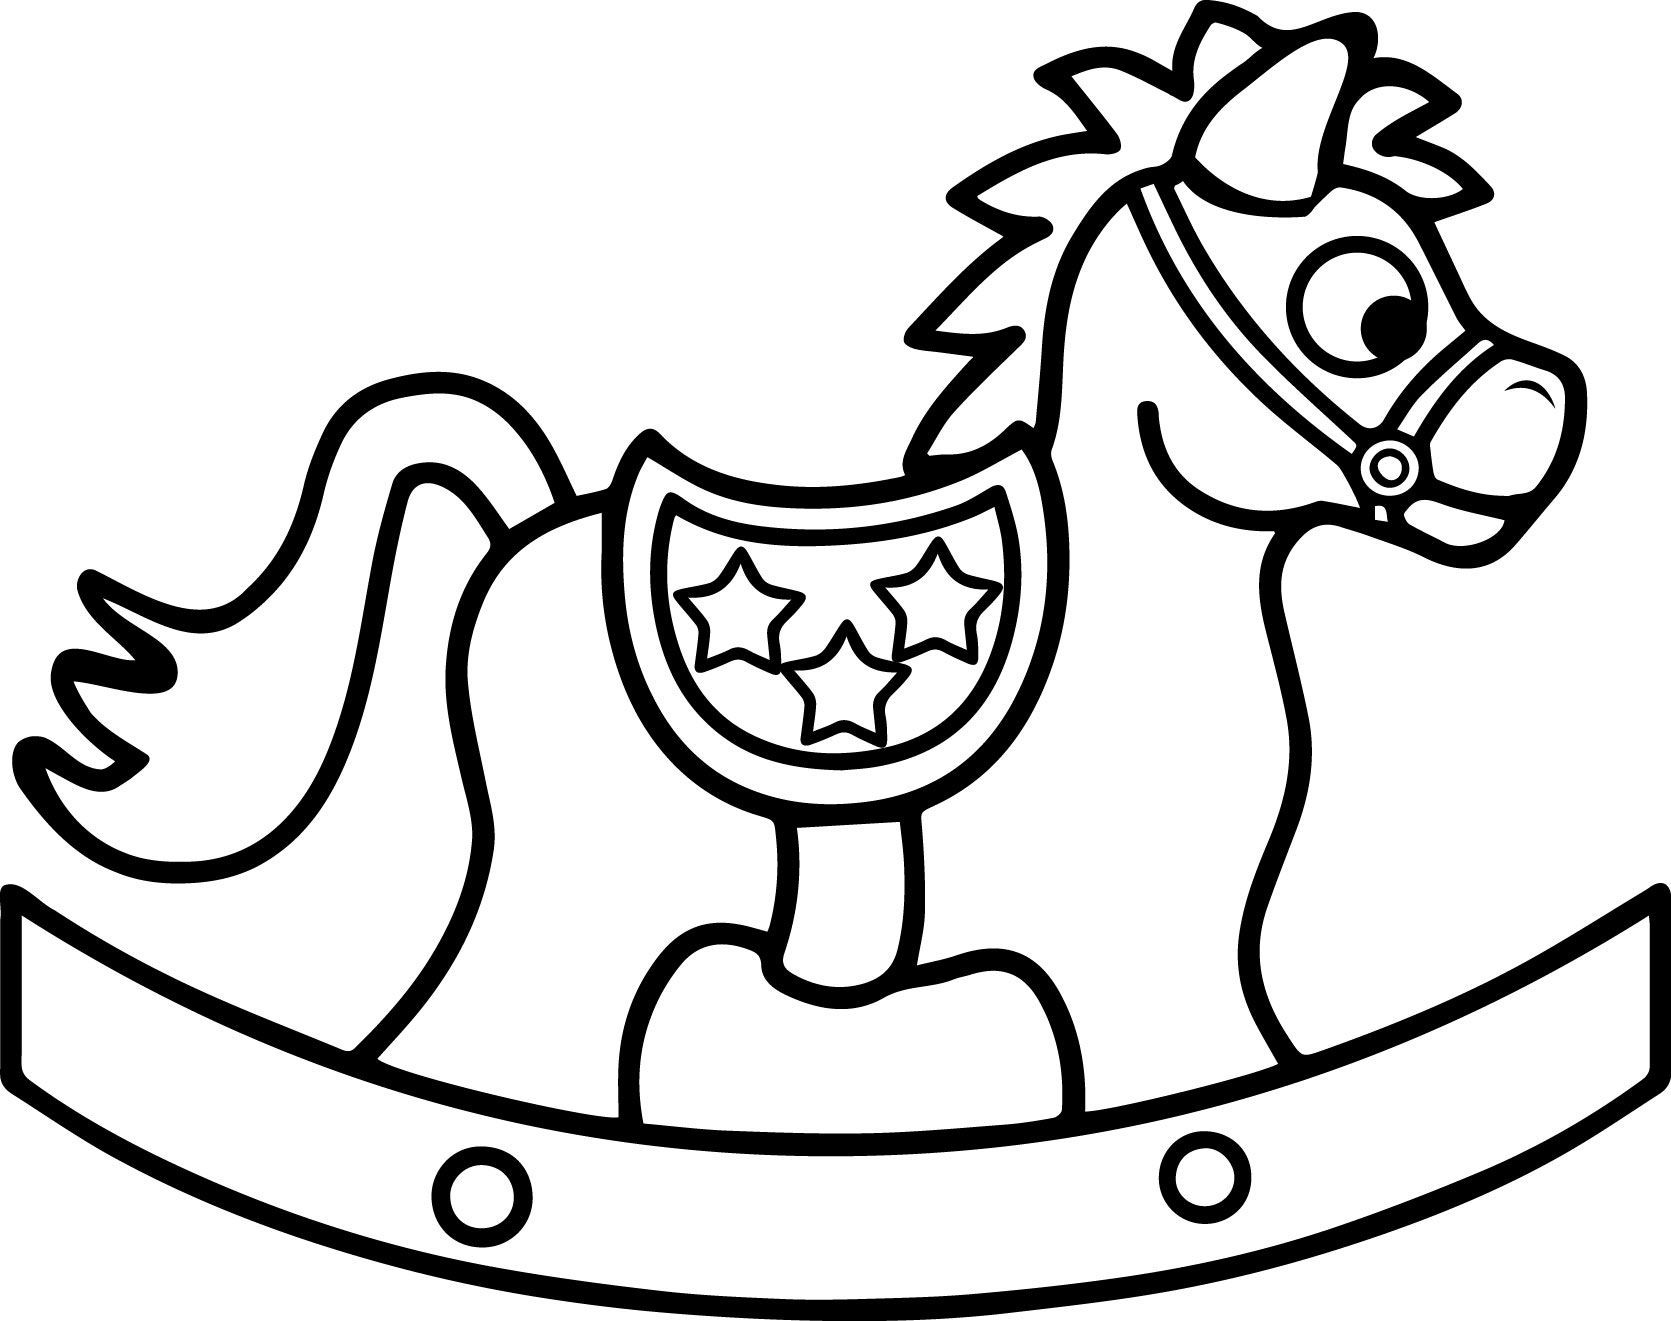 Rocking Horse Coloring Pages at GetDrawings.com | Free for ...